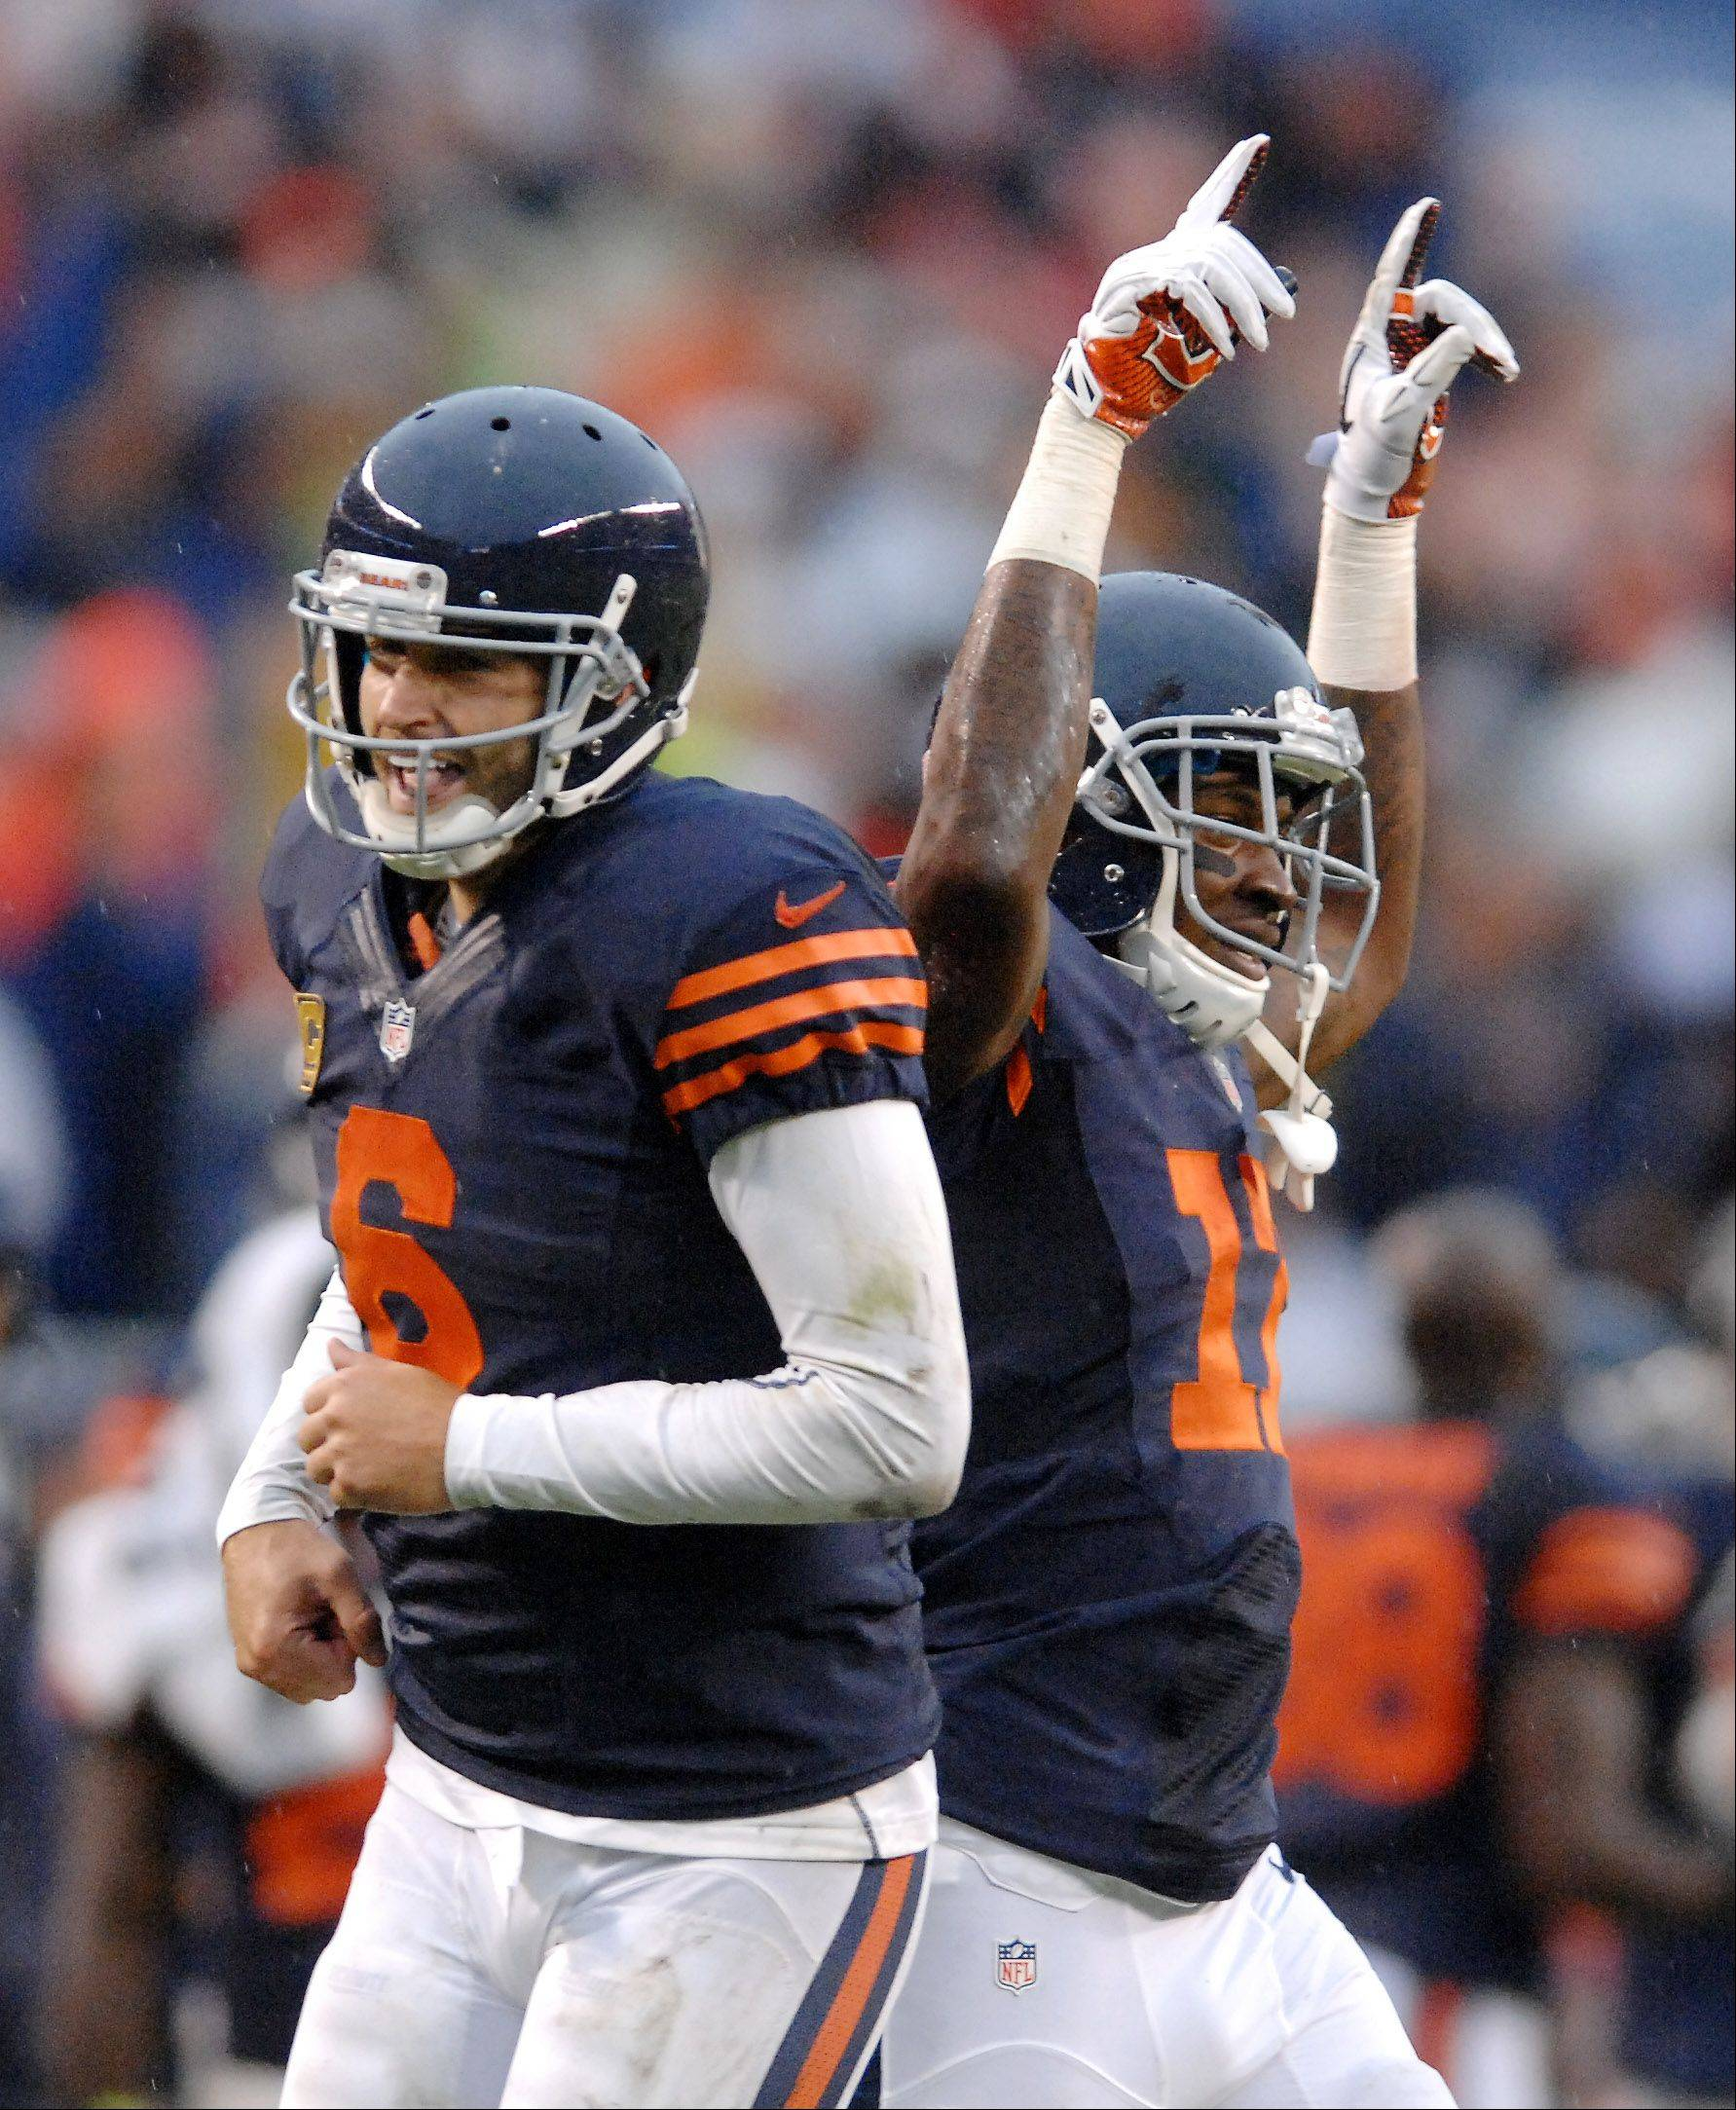 Chicago Bears quarterback Jay Cutler (6) and wide receiver Alshon Jeffery (17) celebrate after the extra point puts the Bears ahead with 10 seconds left during Sunday's game at Soldier Field in Chicago.